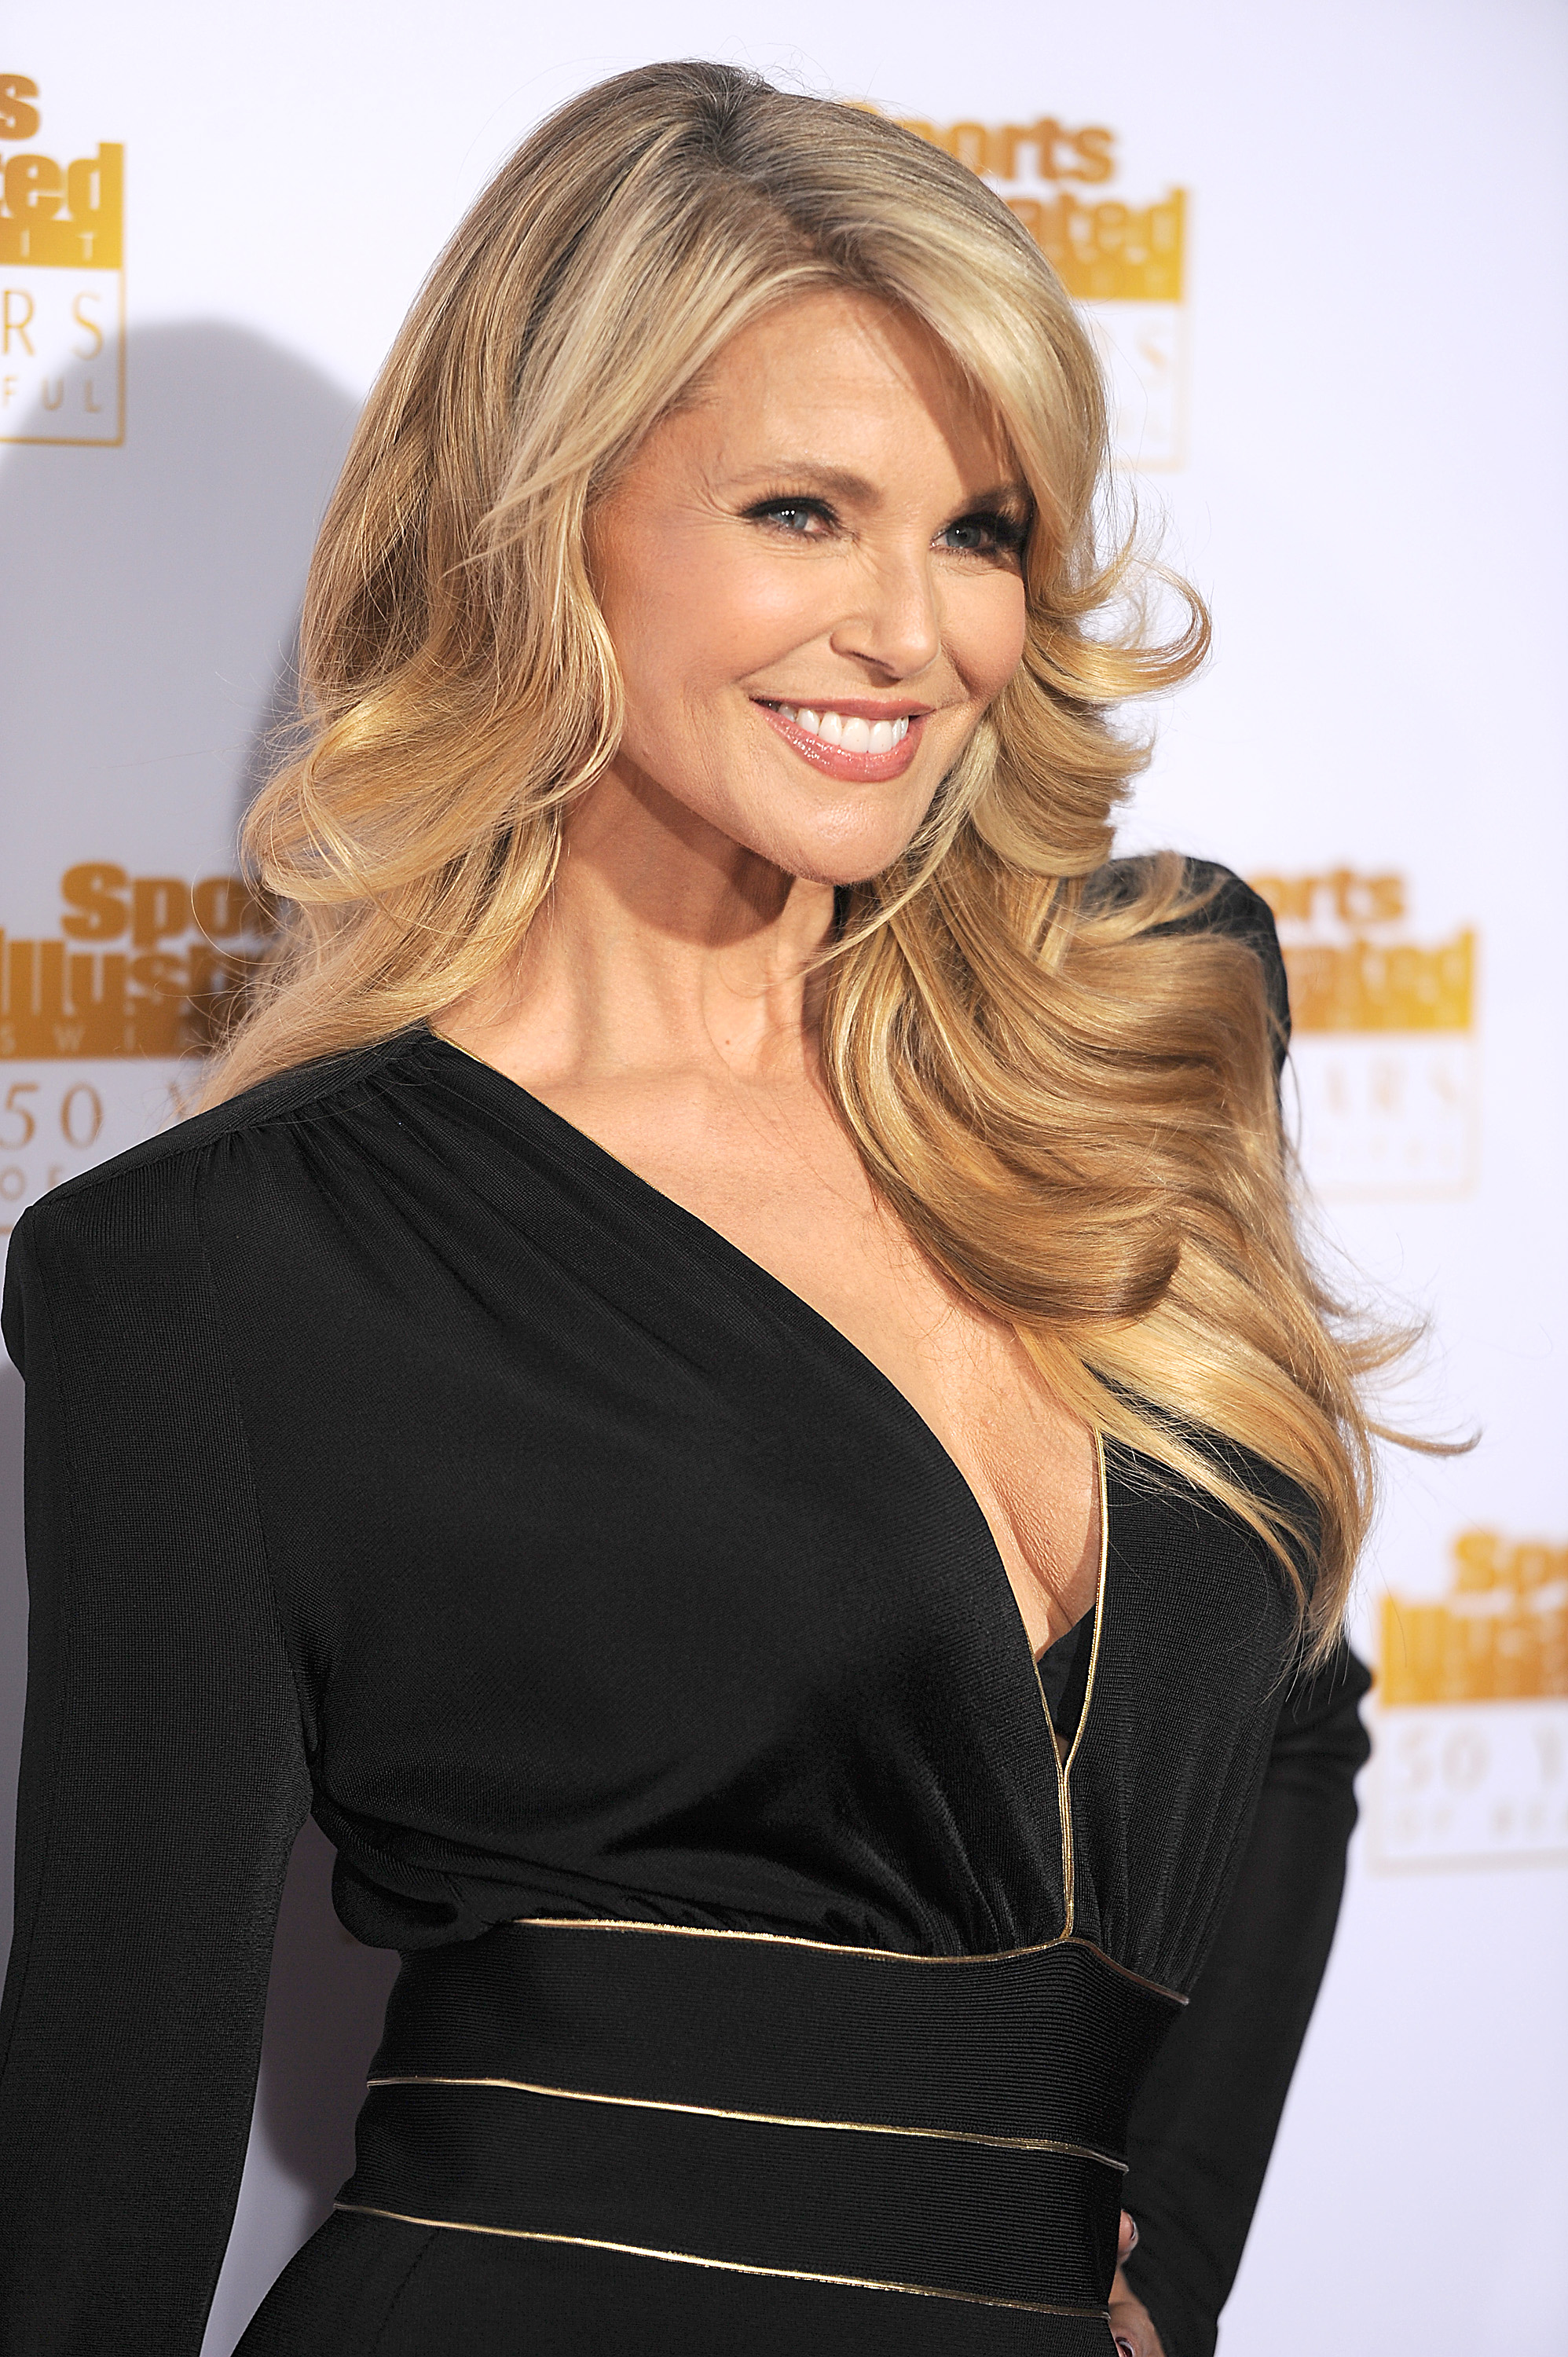 7 Christie Brinkley Skin Care Secrets That You Can Use In Your Own